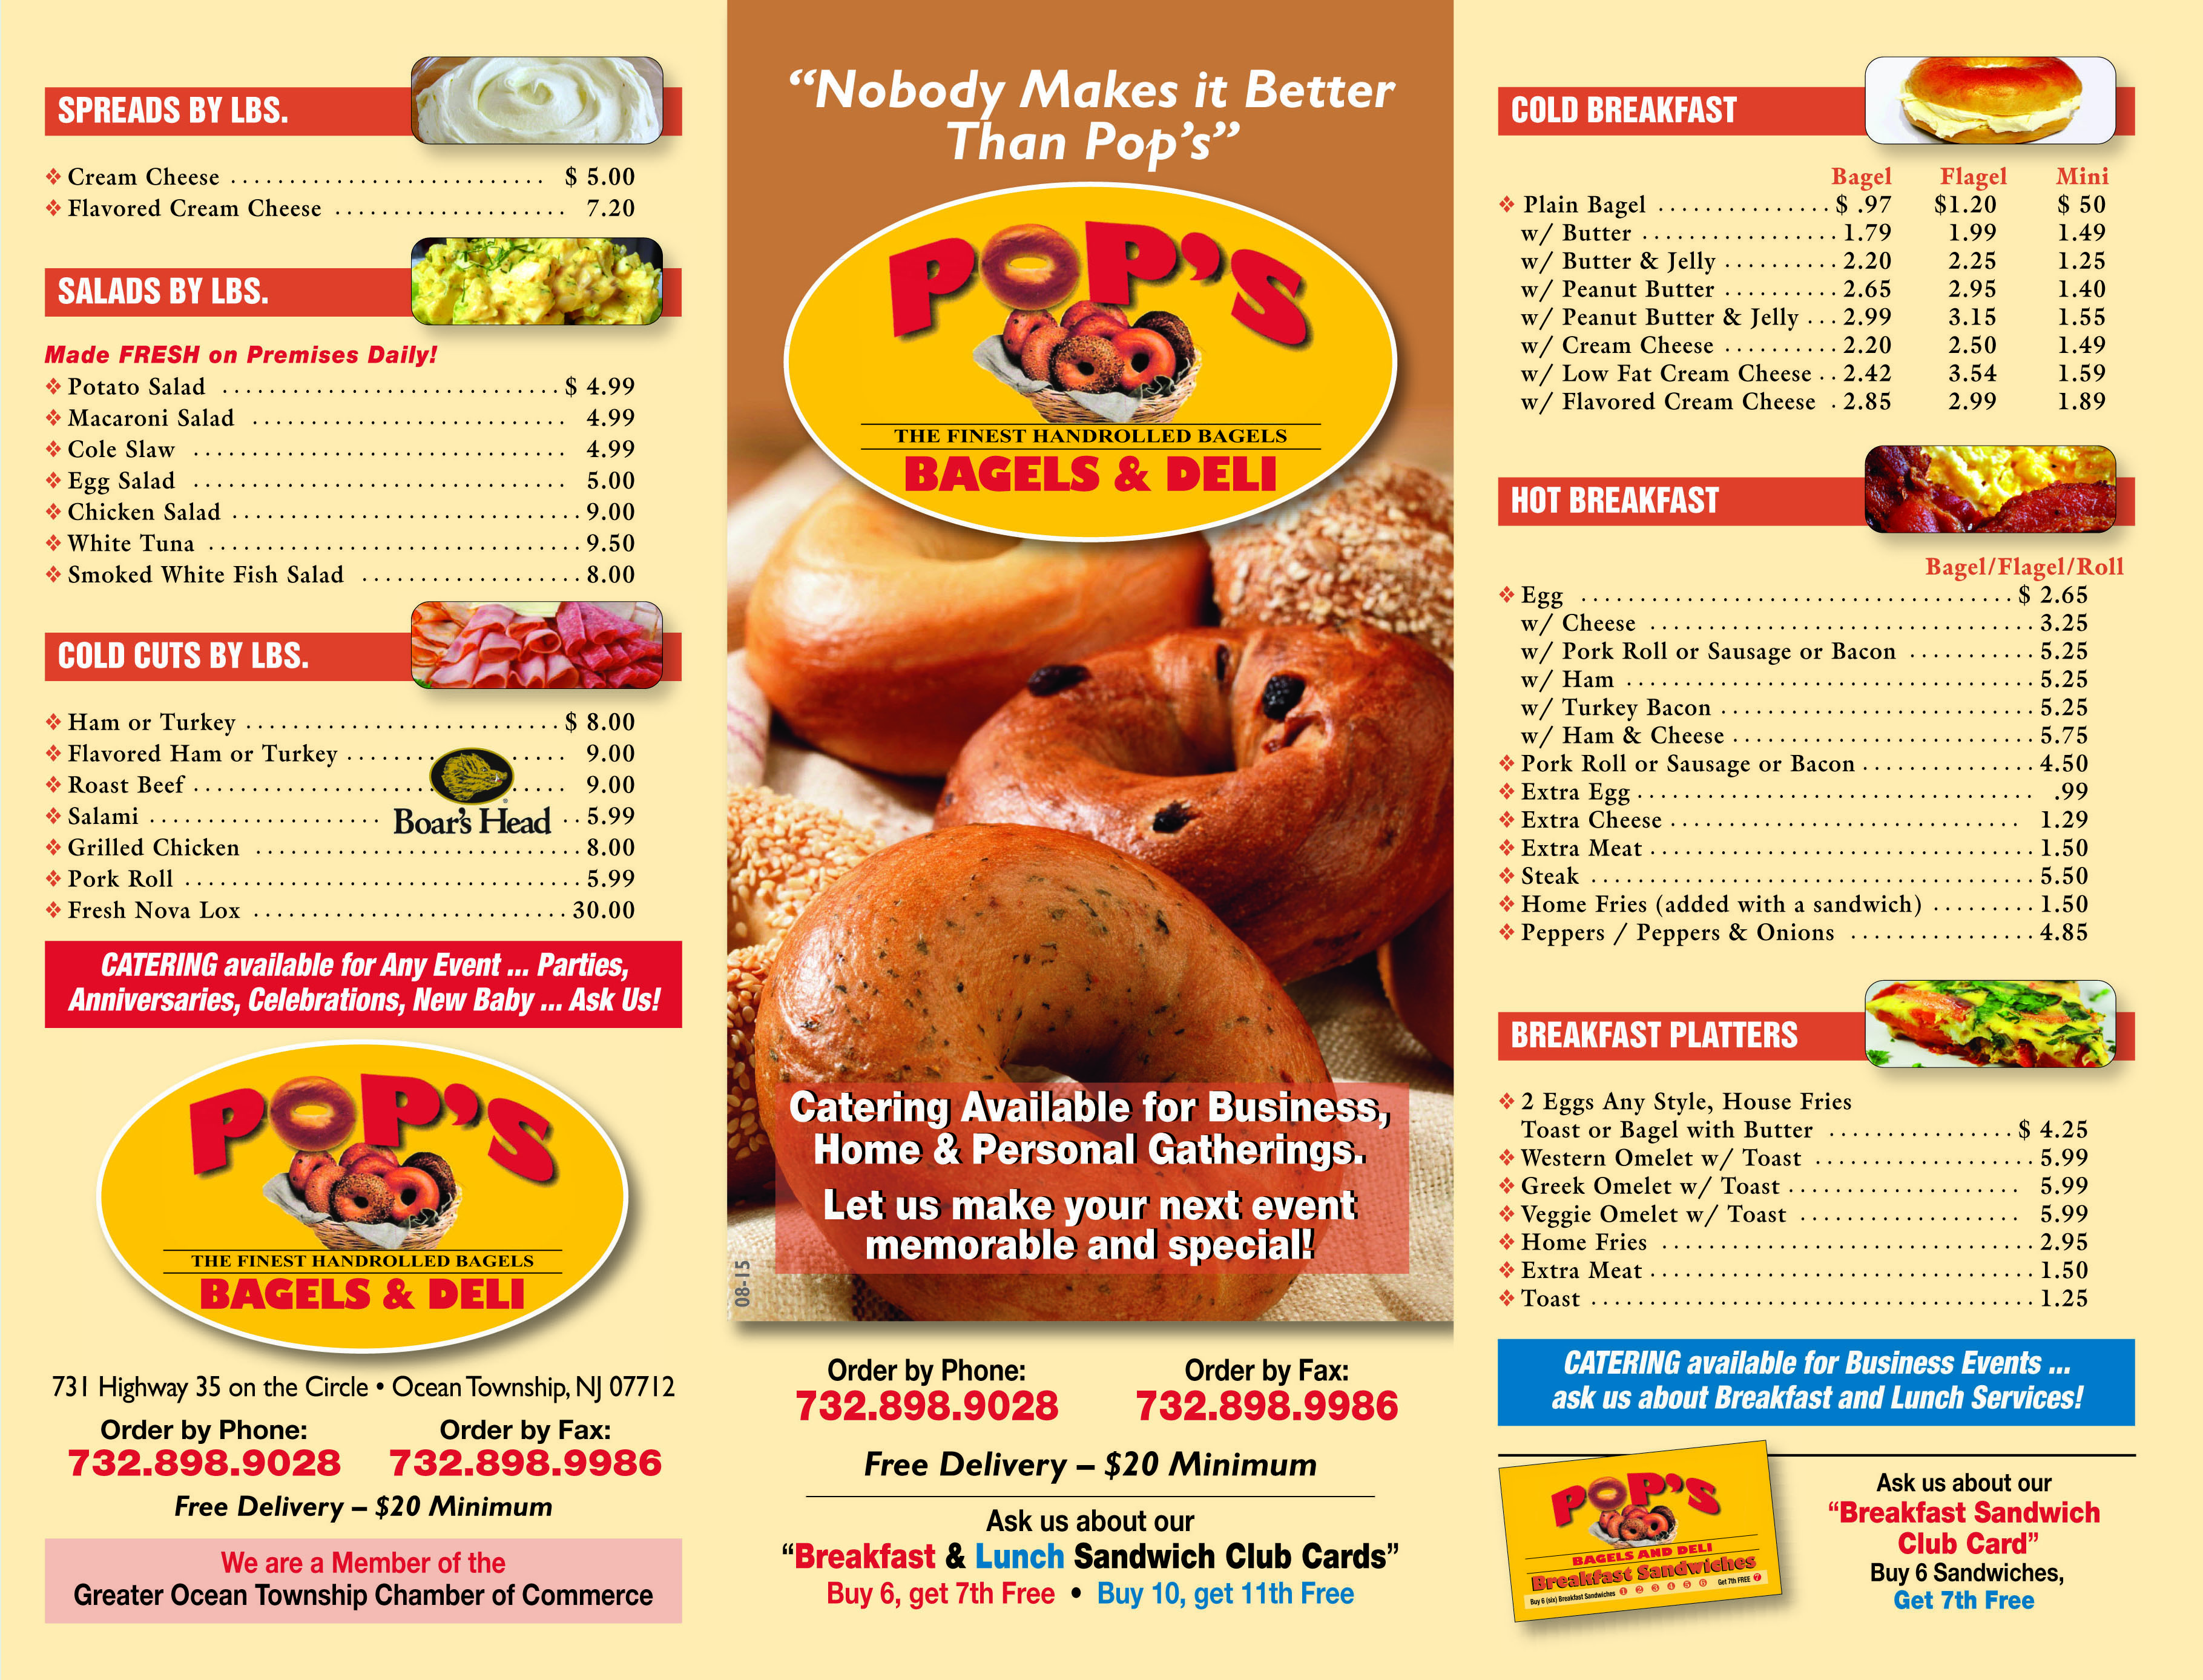 pops bagels menu 2015-16 _outside.jpg